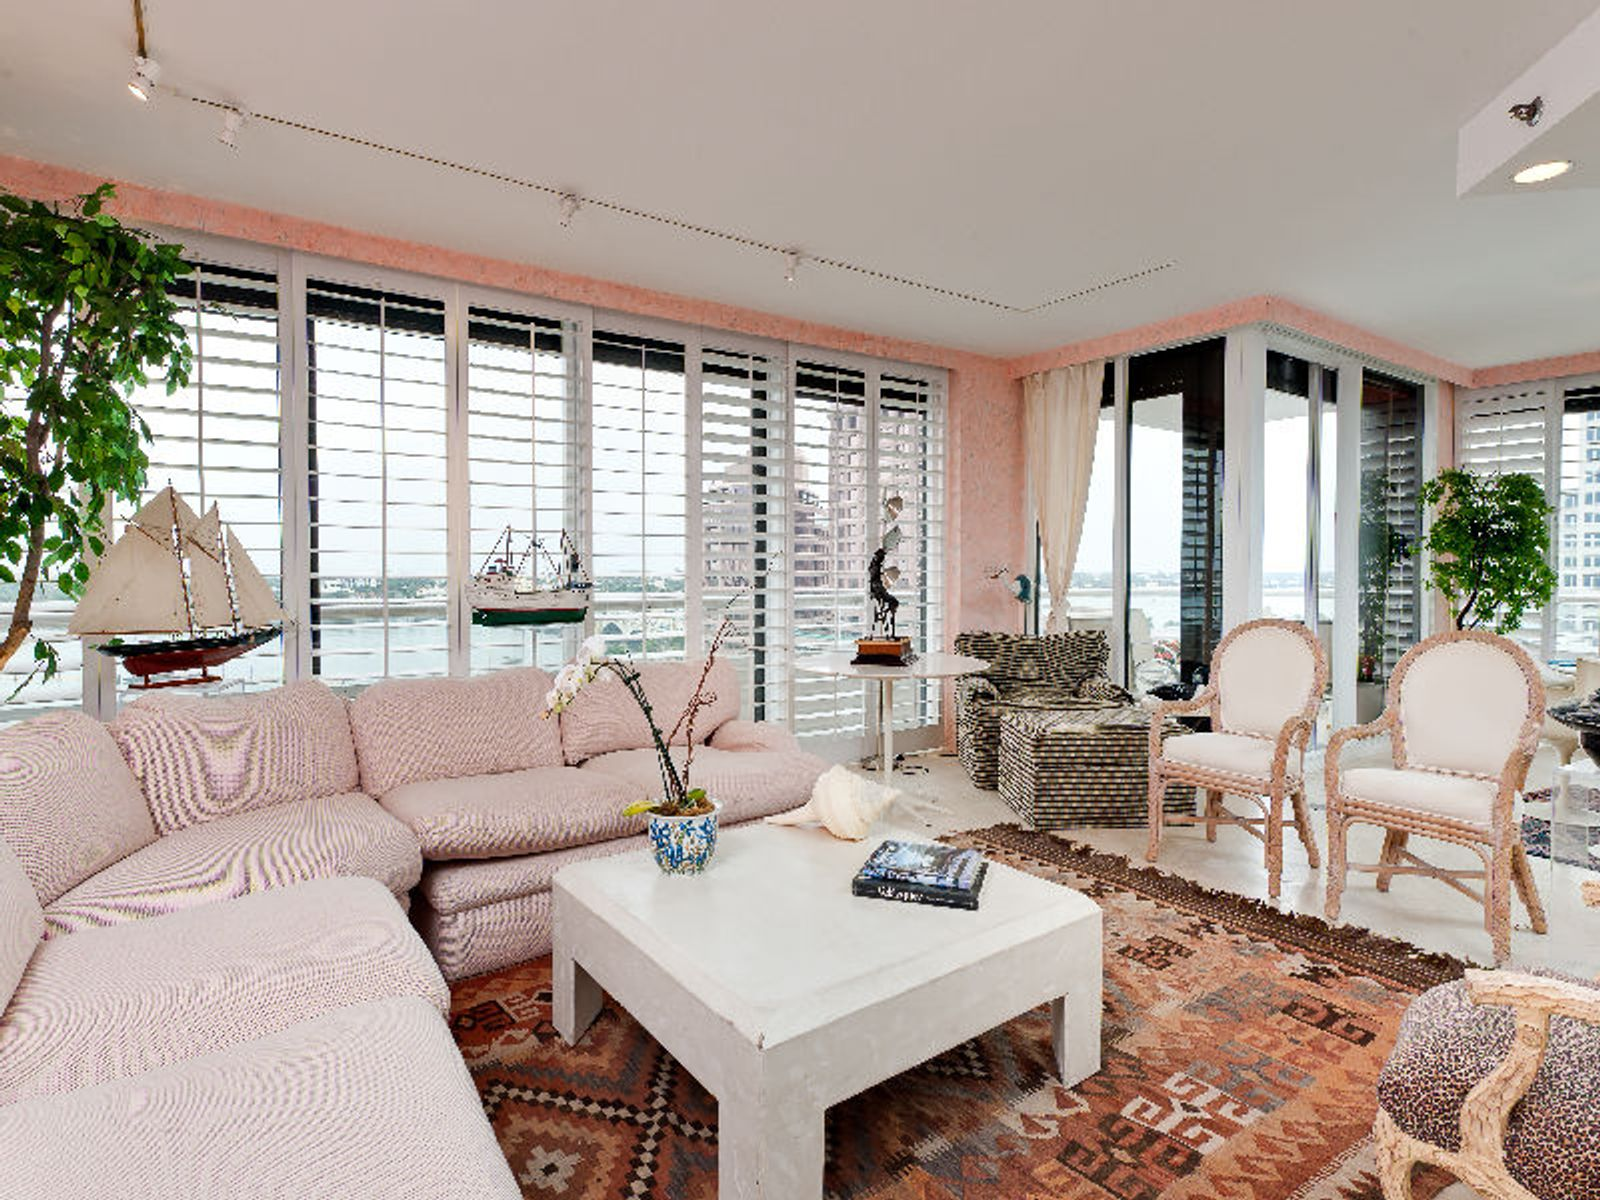 Trump Plaza Unique Double Apartment, West Palm Beach FL Condominium - Palm Beach Real Estate